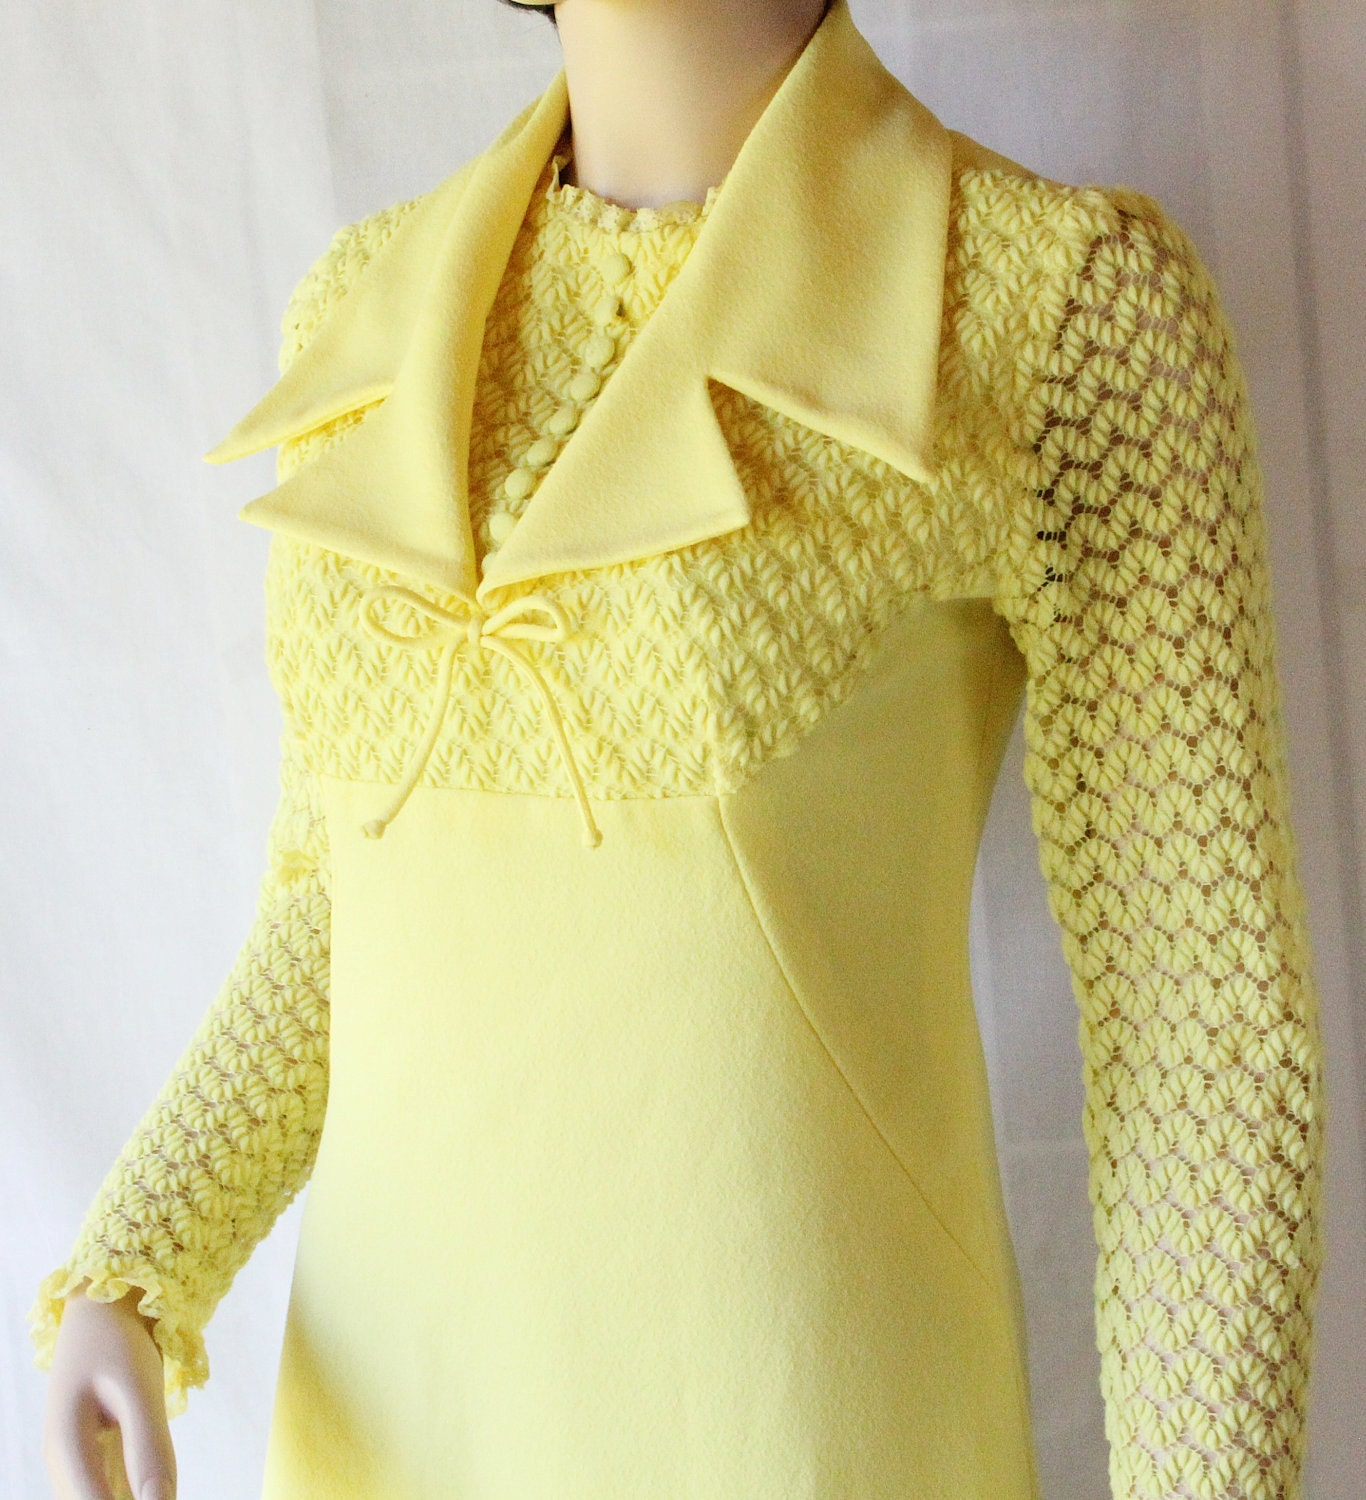 70s Lemon Yellow Dress / Popcorn Stitch Sleeves / Mod Vintage FUN - PetticoatsPlus